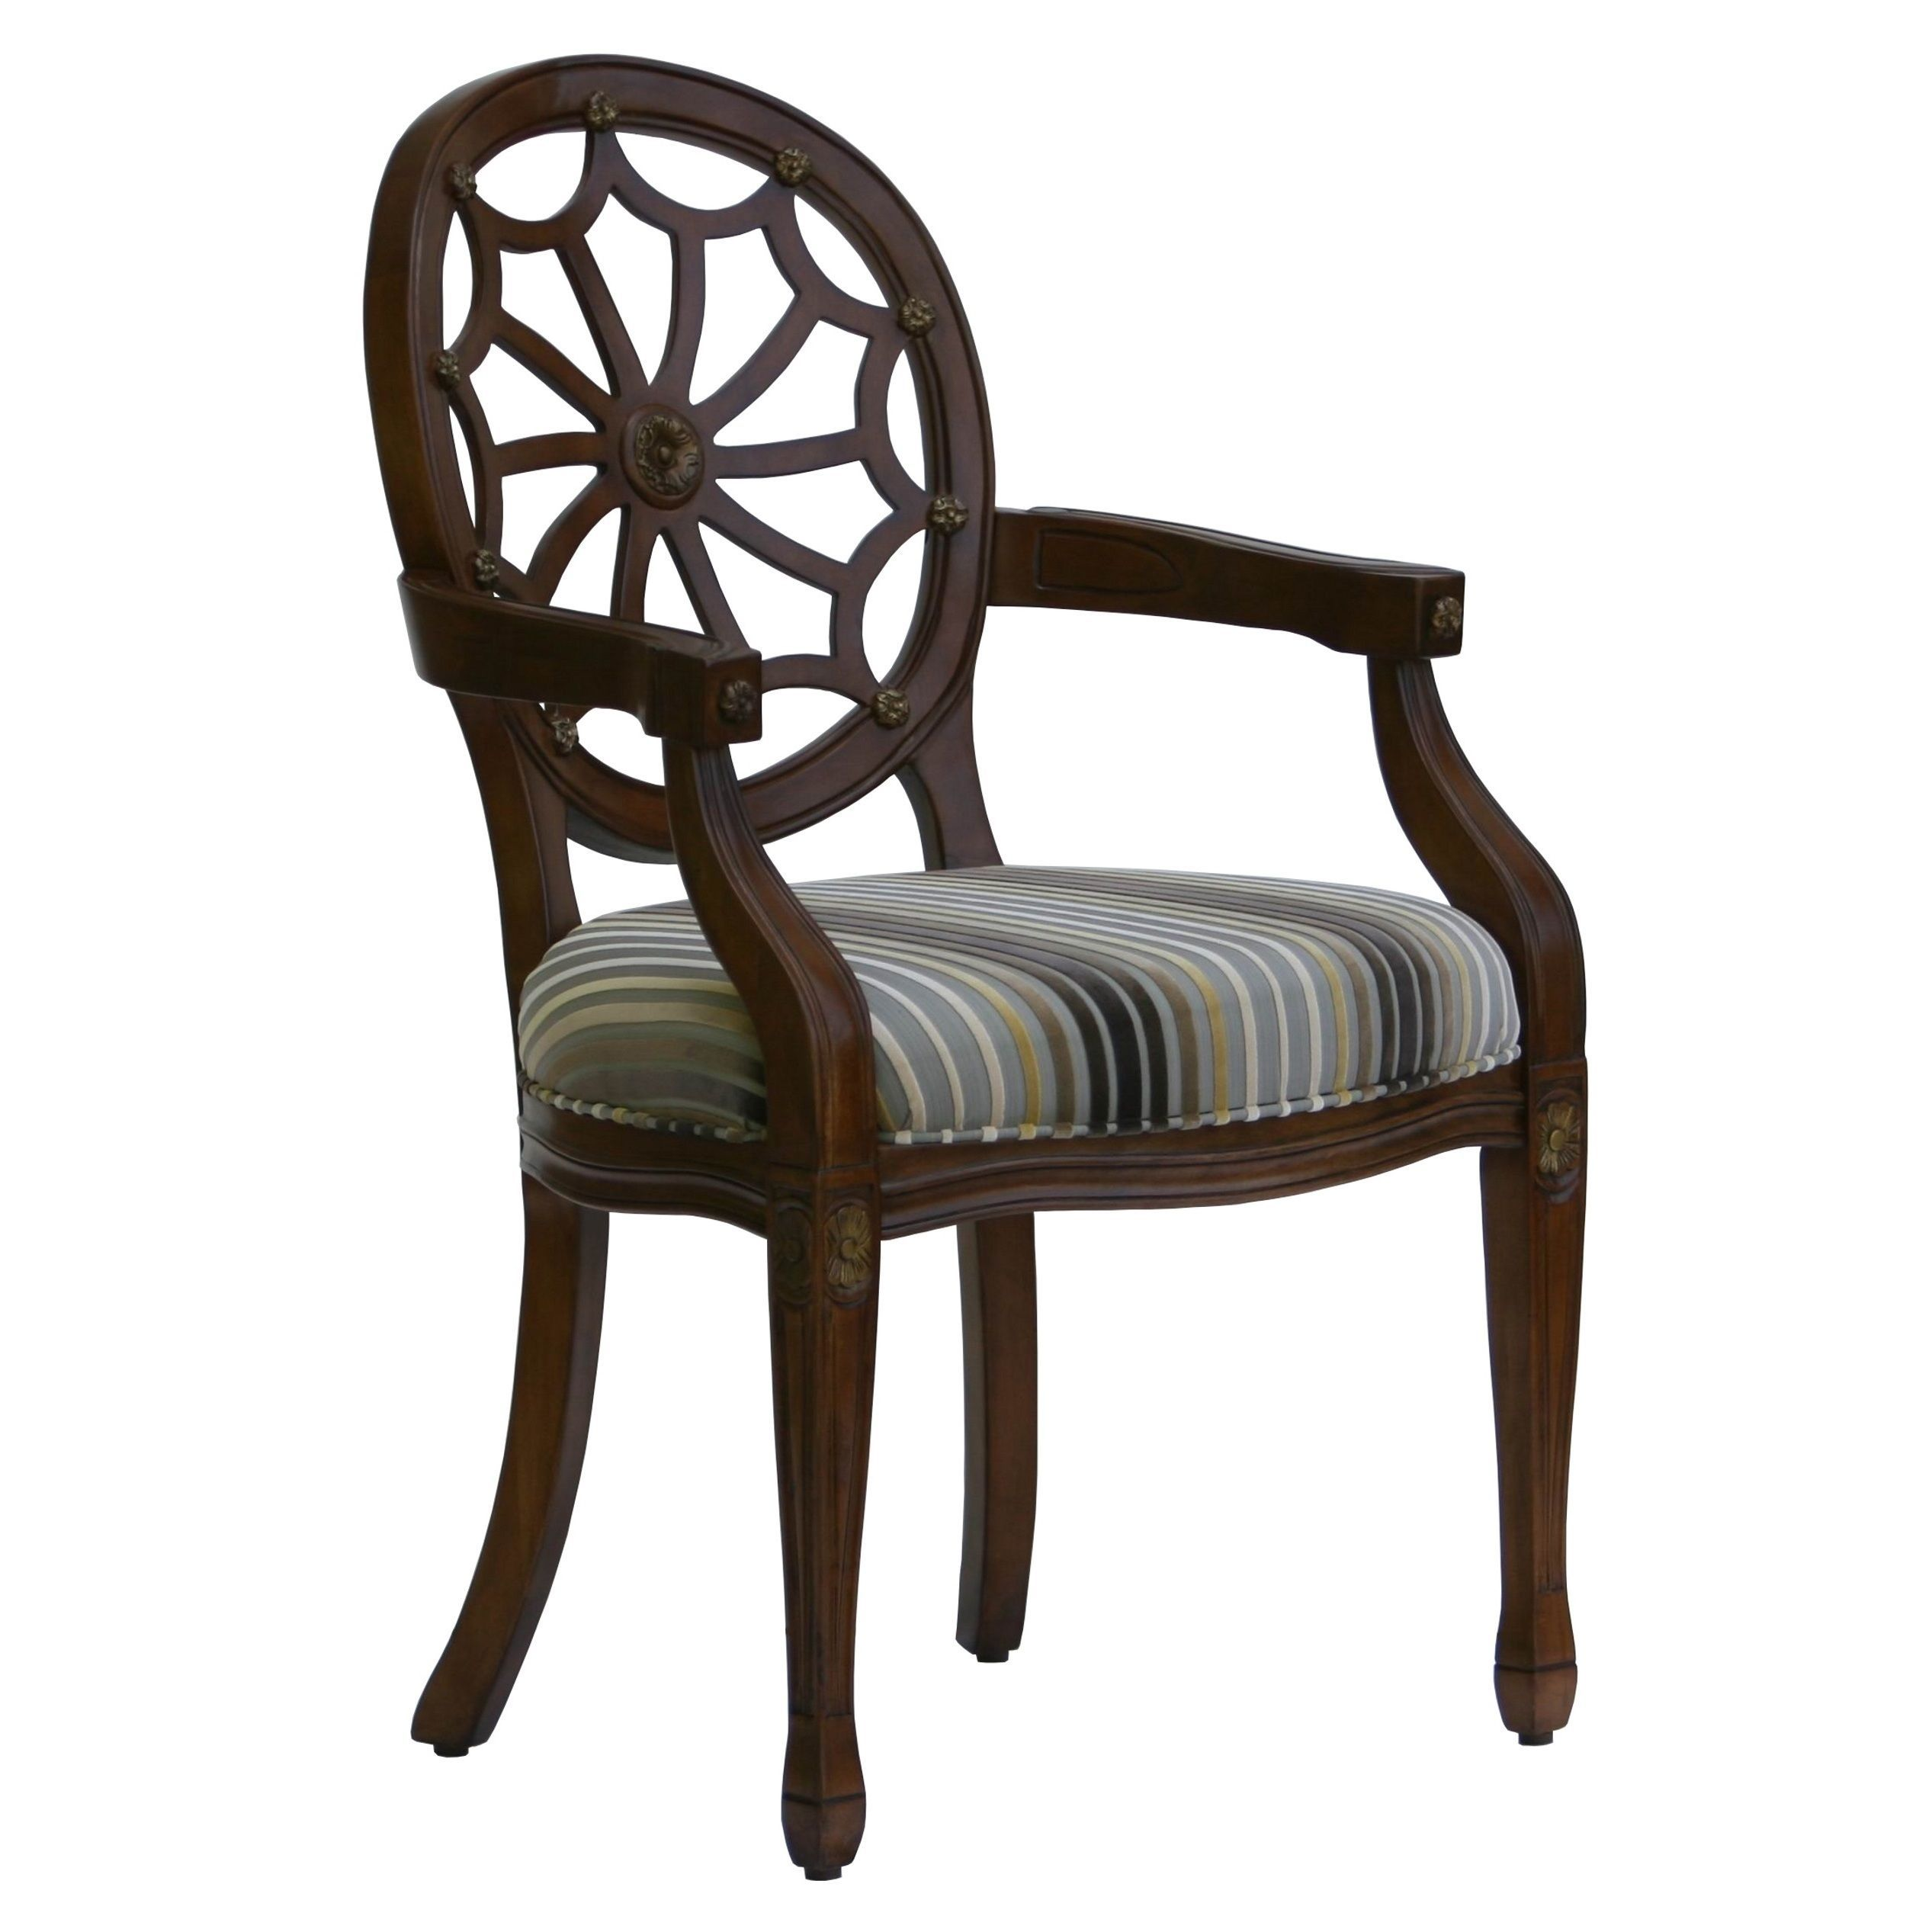 The traditional style of this Lancaster spider back chair will add beauty to any room in your home. The cherry finished web style back and frame feature hand-carved details accented by gold highlighting.